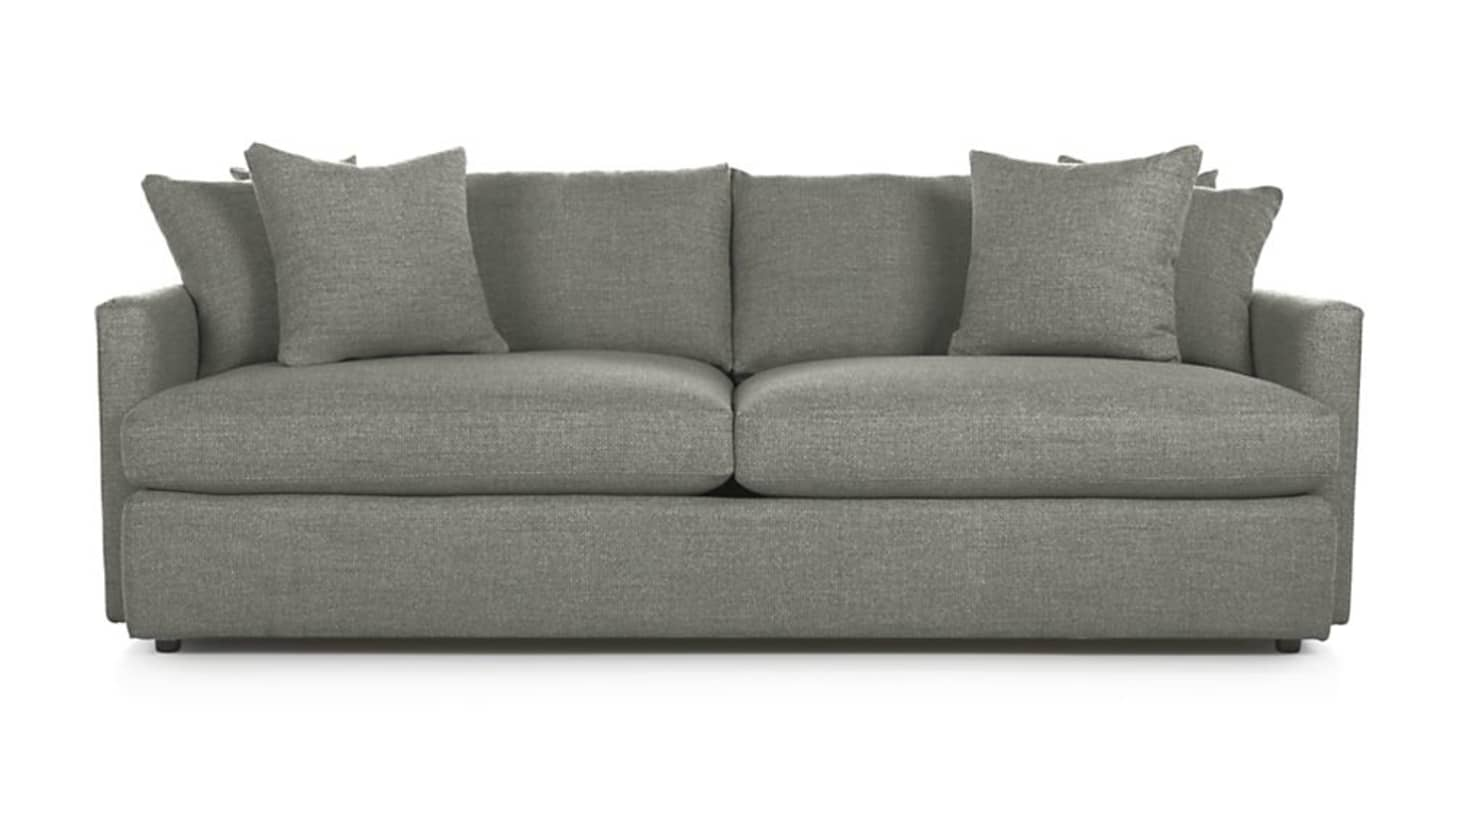 Peachy Reviewed The Most Comfortable Sofas At Crate Barrel Ibusinesslaw Wood Chair Design Ideas Ibusinesslaworg